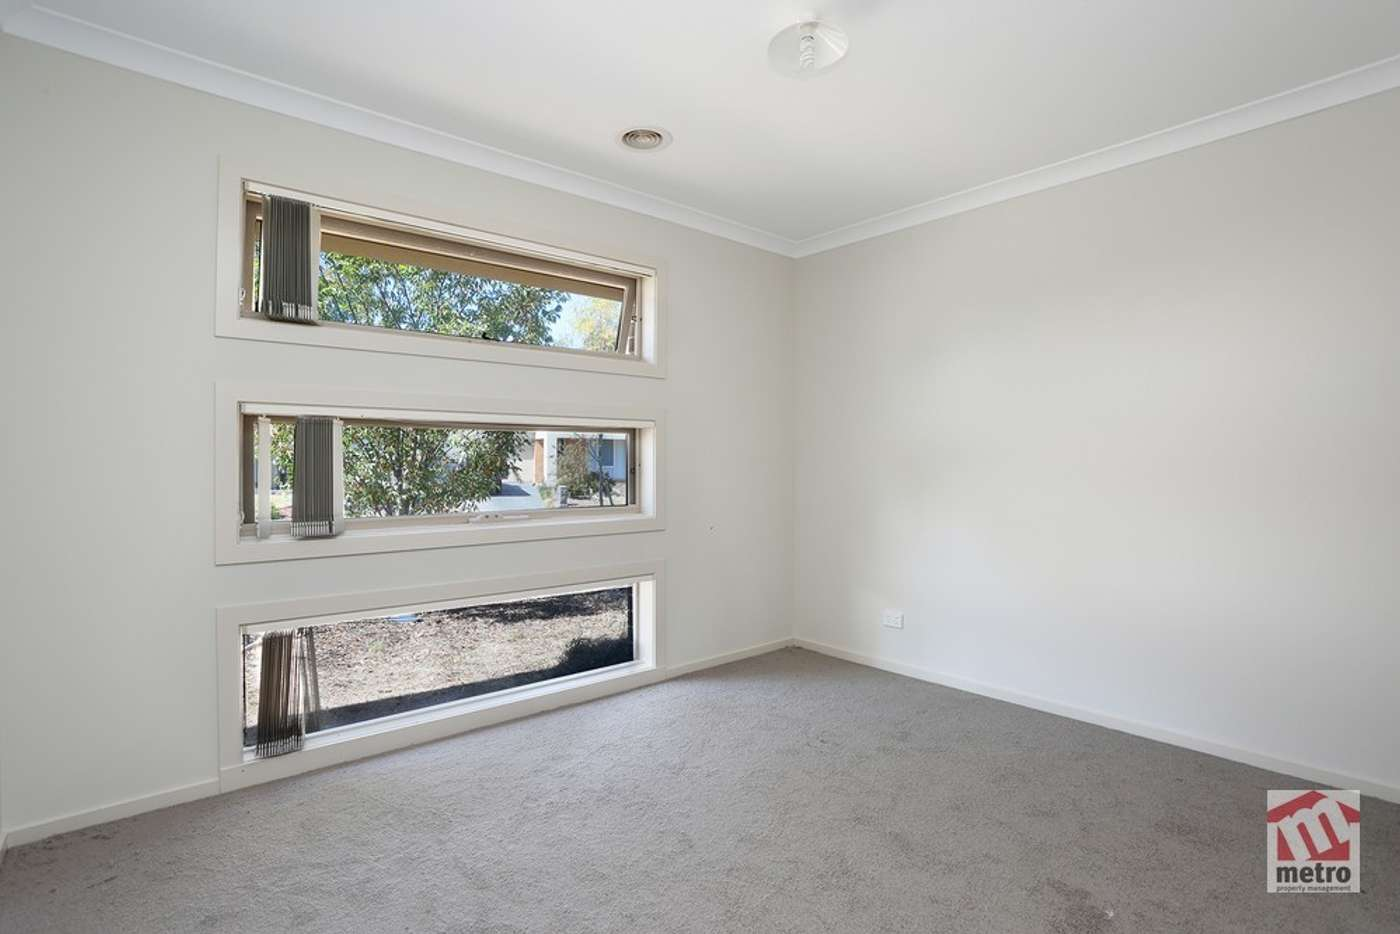 Fifth view of Homely house listing, 6 Circuit Drive, Truganina VIC 3029